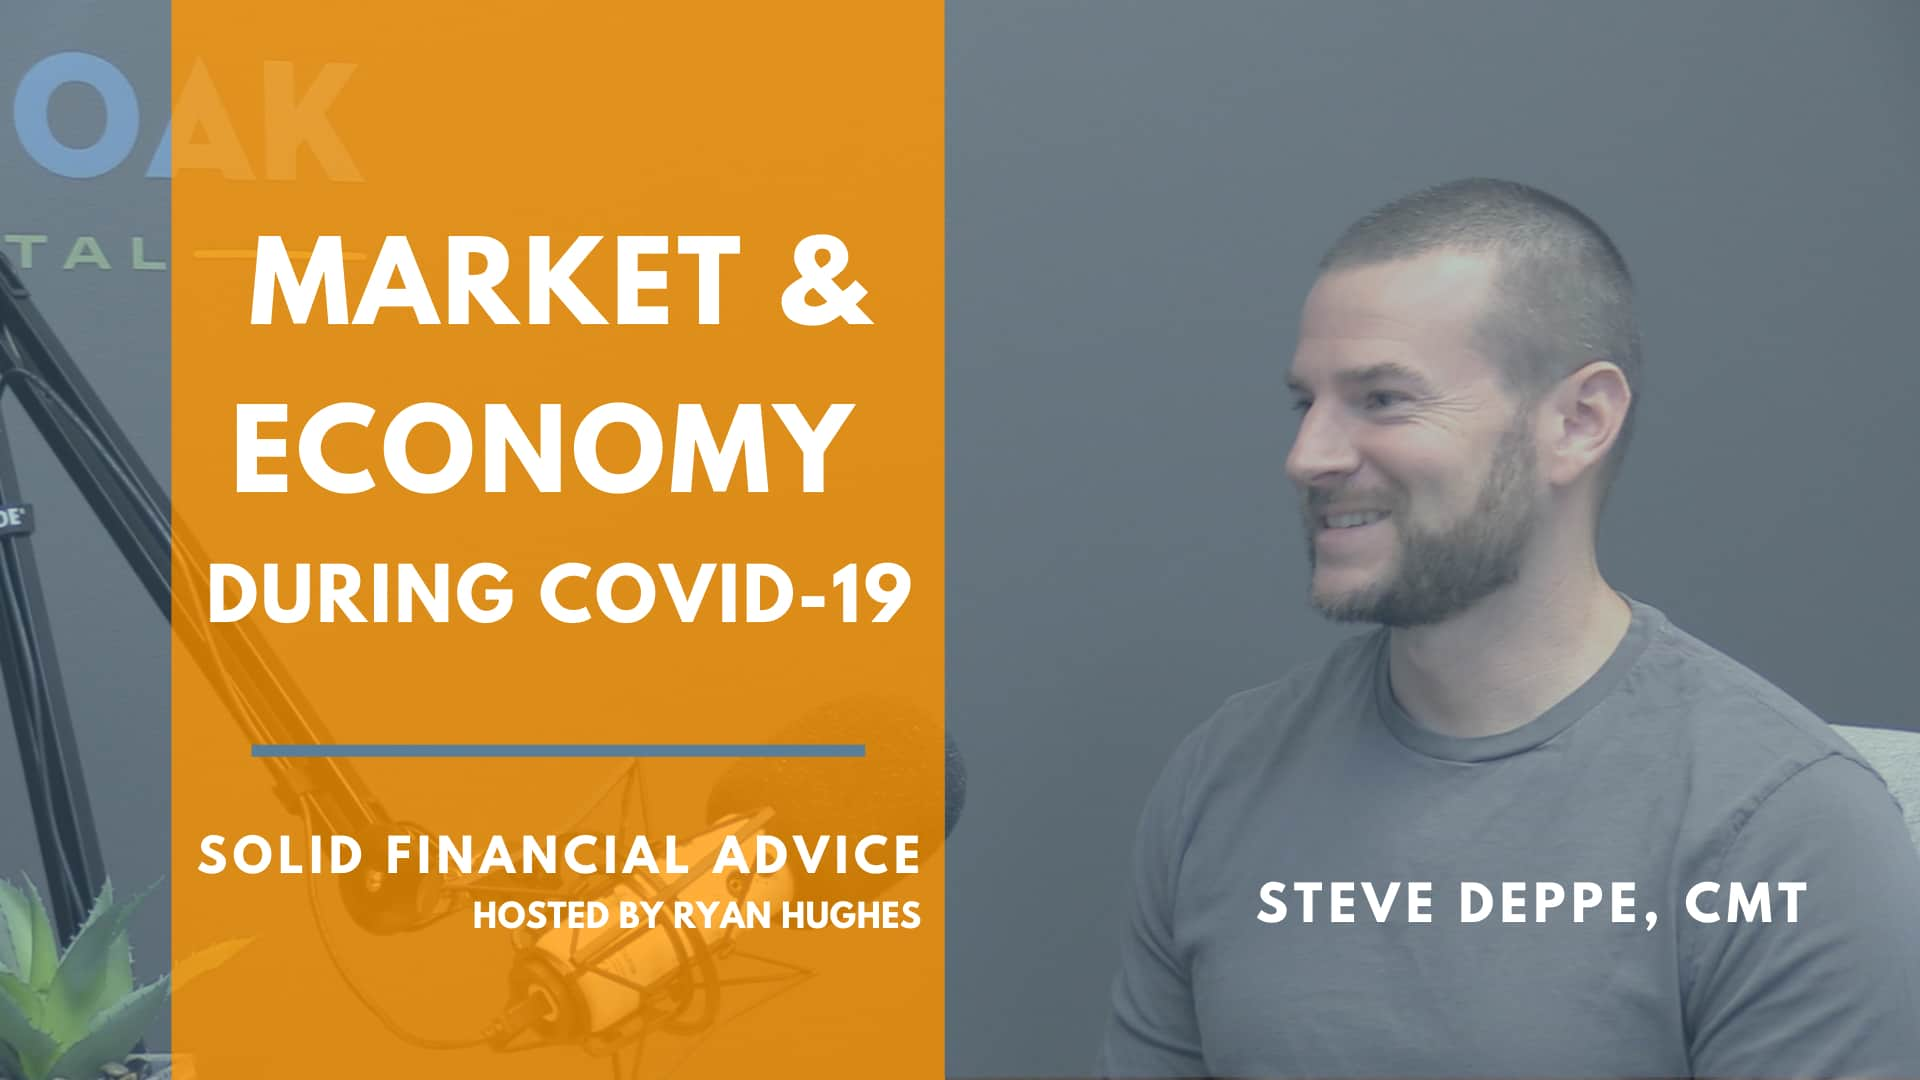 Steve Deppe Solid Financial Advice